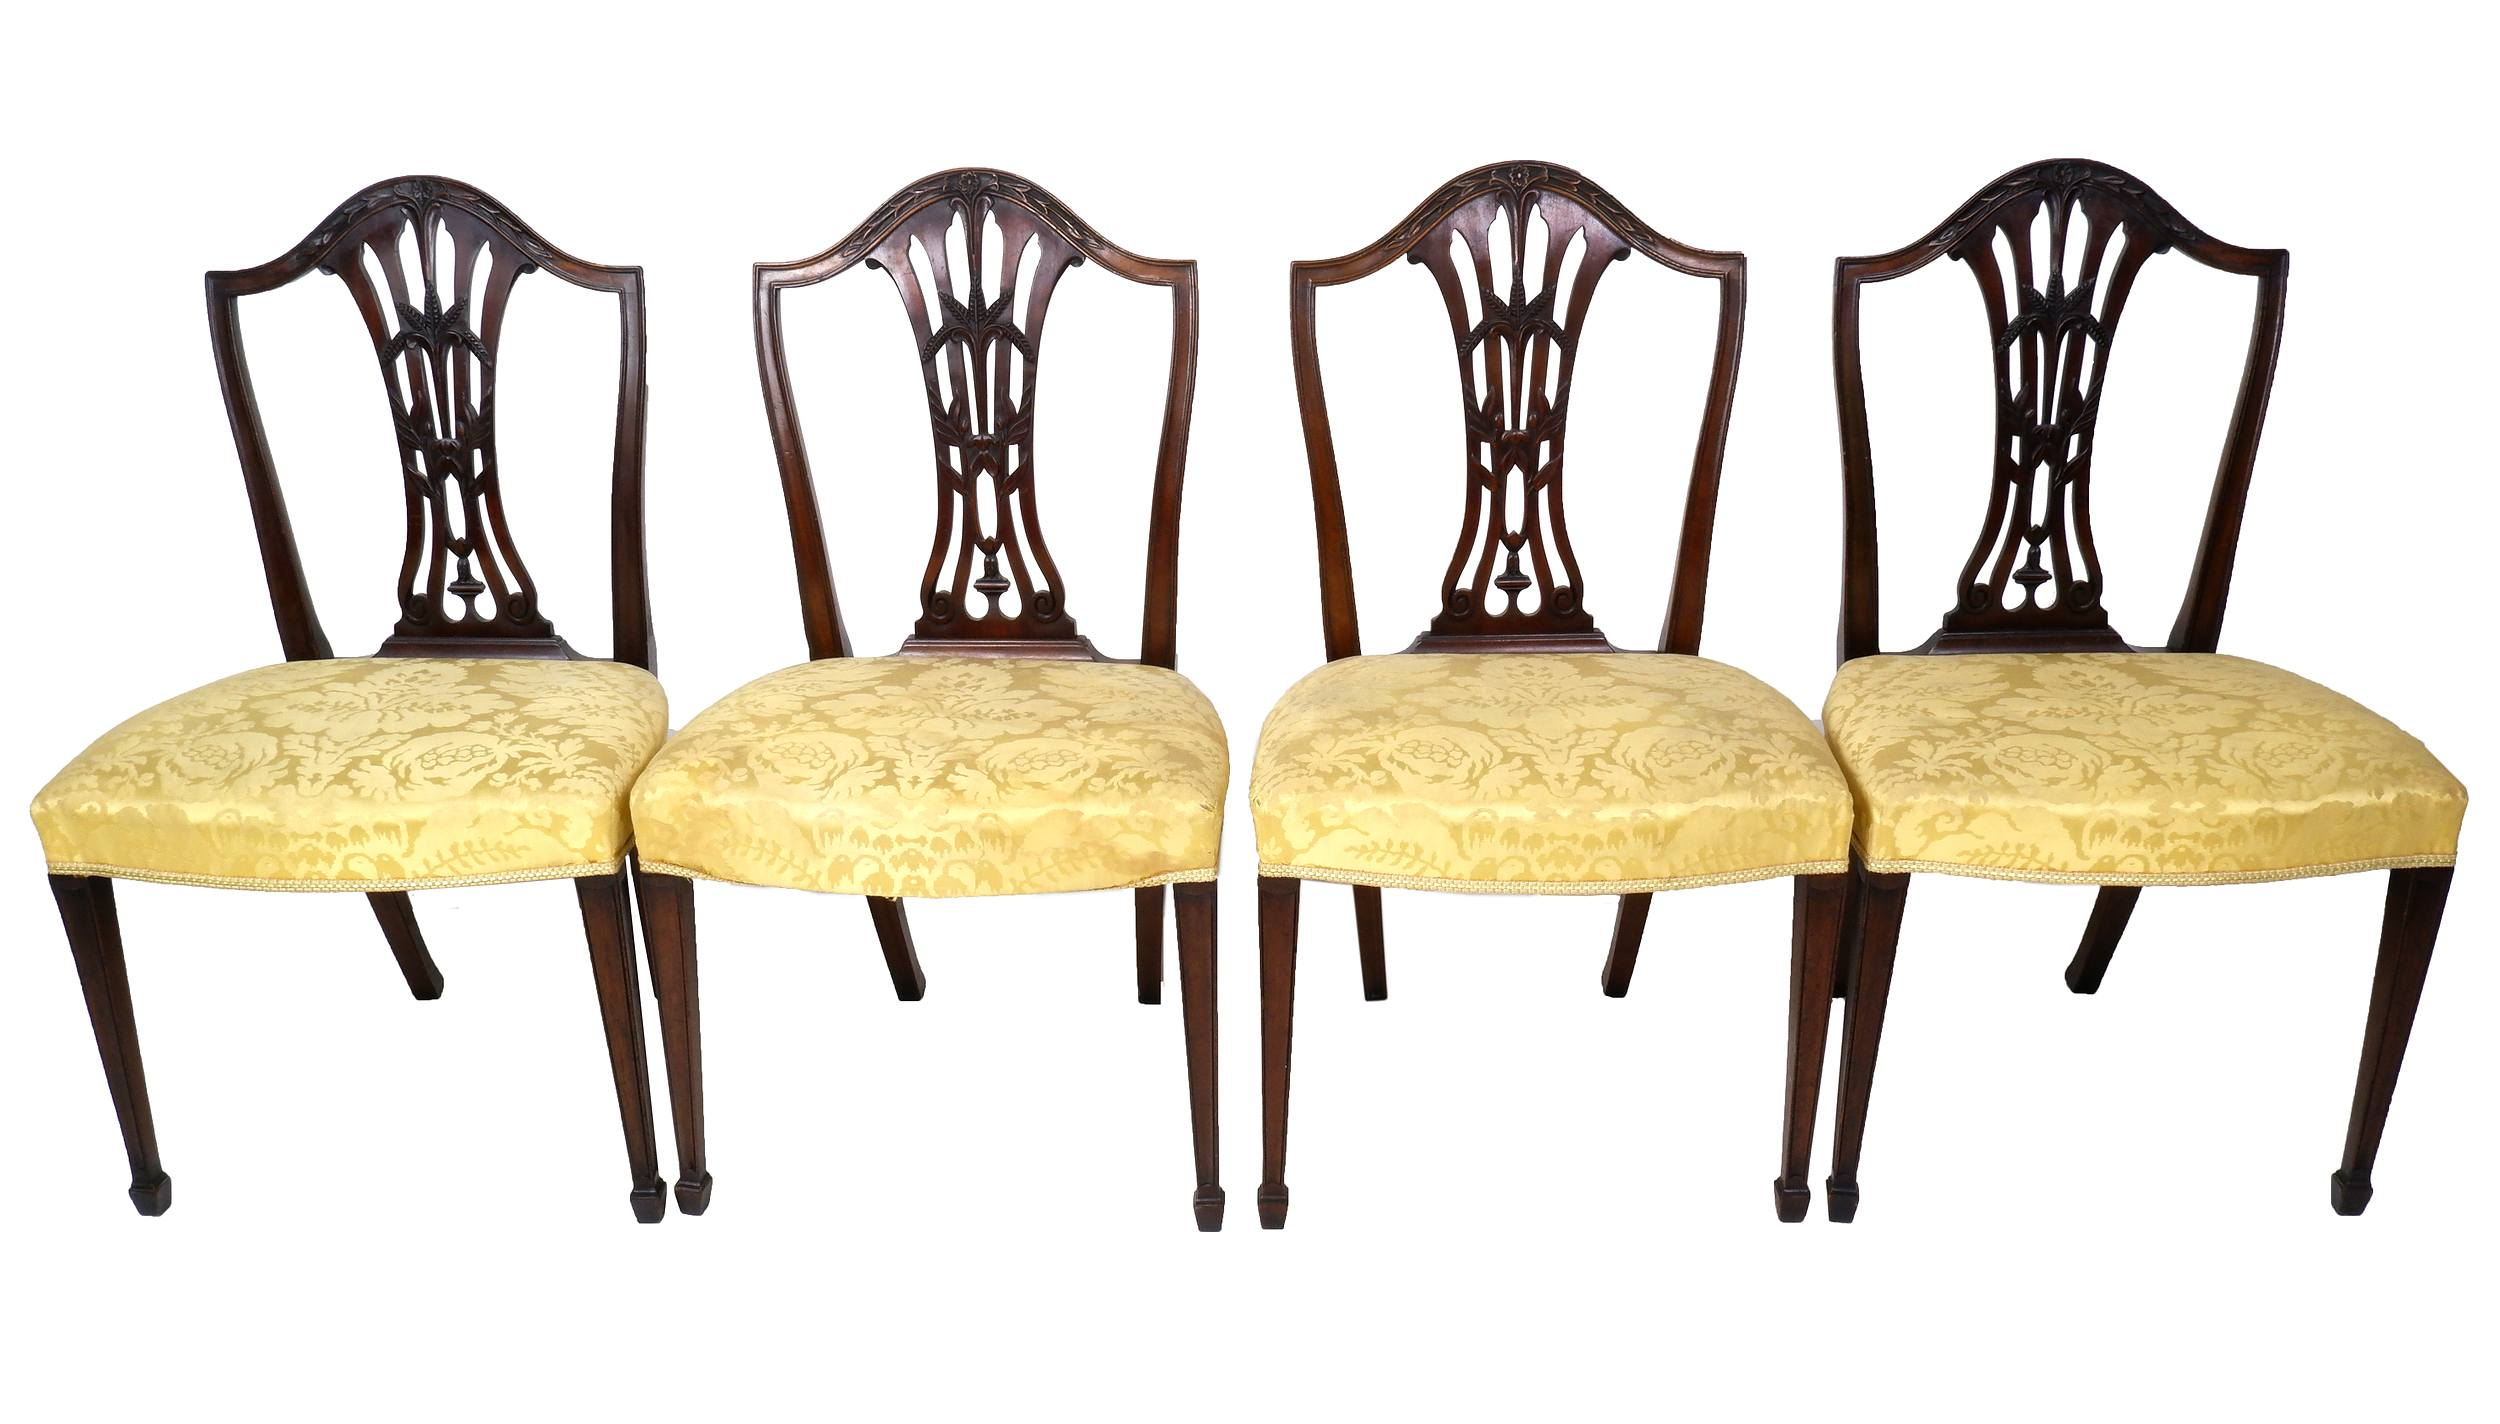 'Four Edwardian Hepplewhite Style Mahogany Dining Chairs with Carved Wheat Sheaf Decoration'